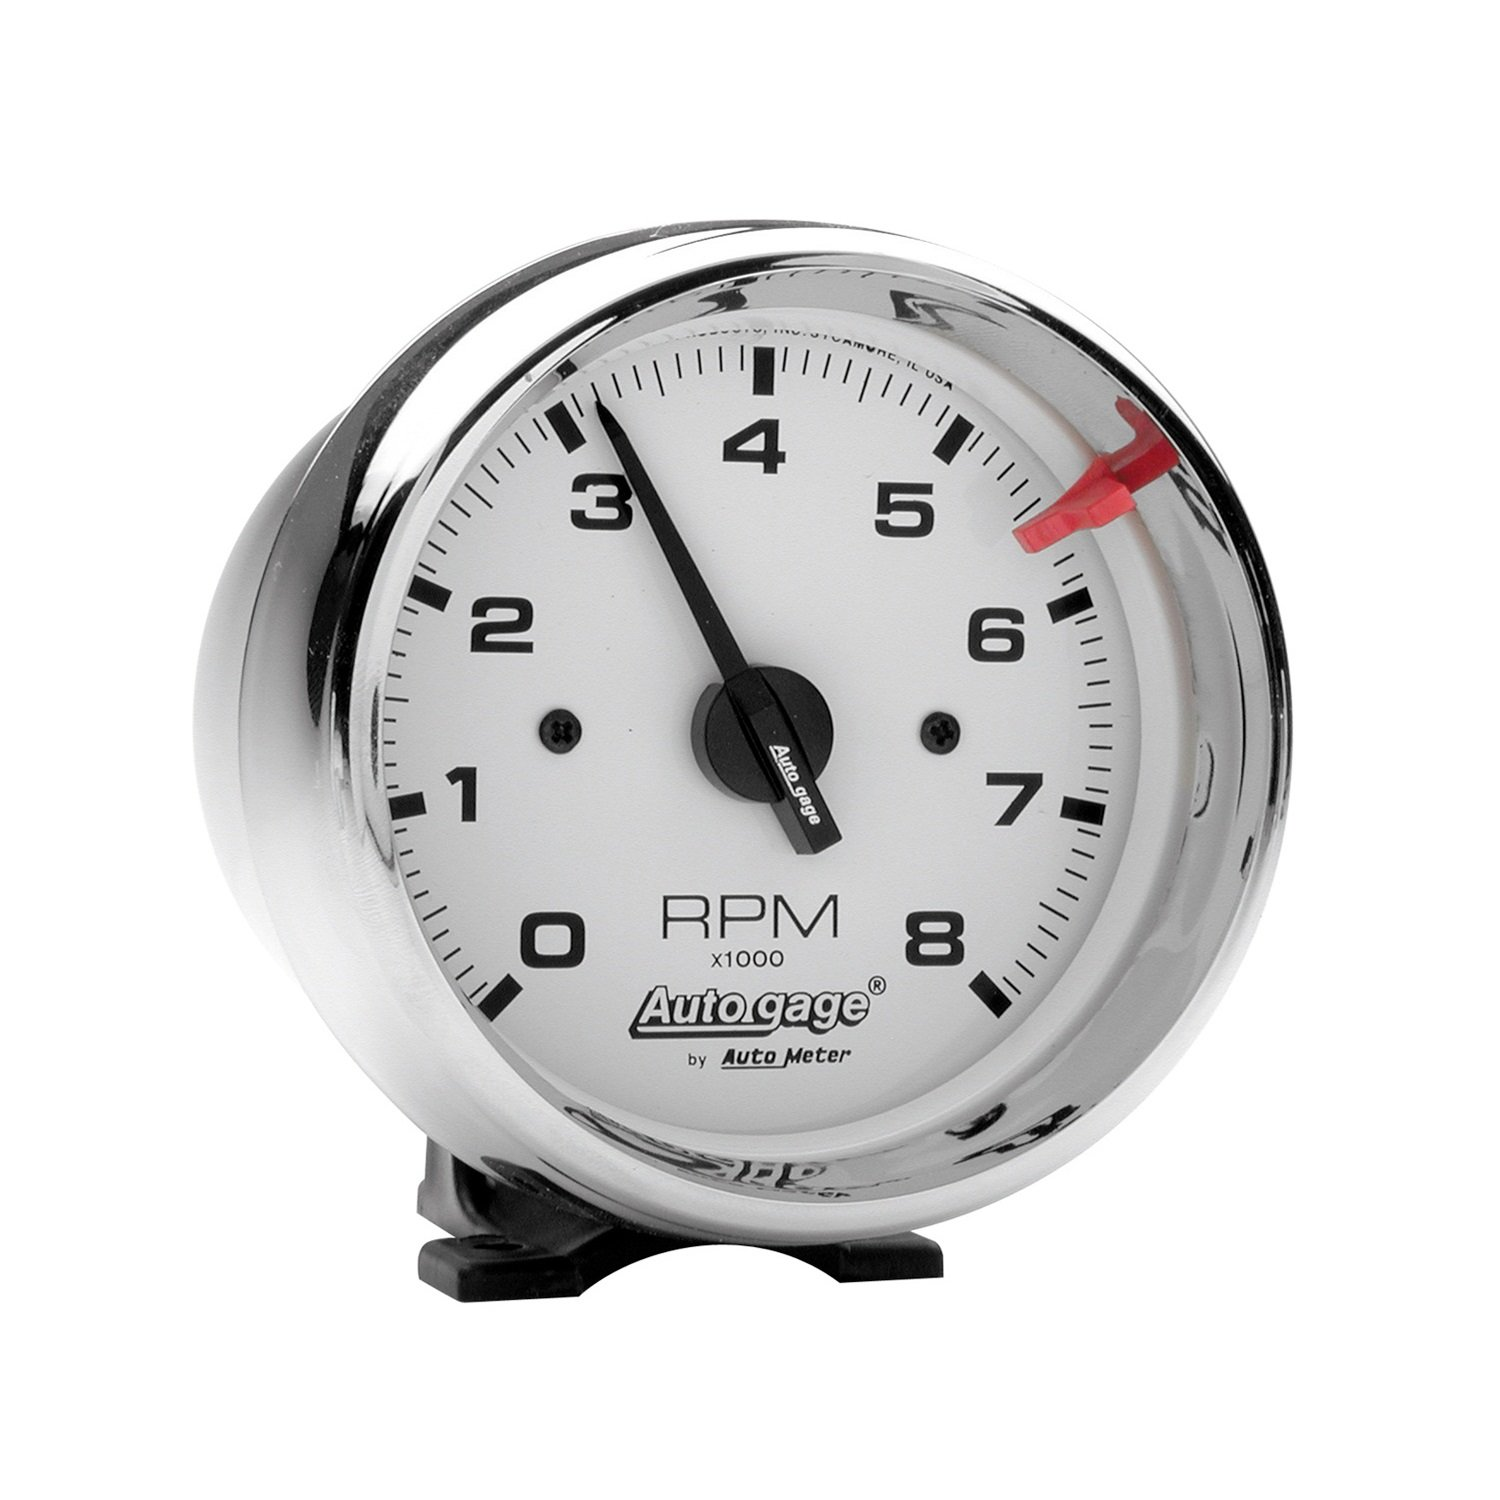 Auto Meter 2304 Autogage White Face Tachometer by AUTO METER